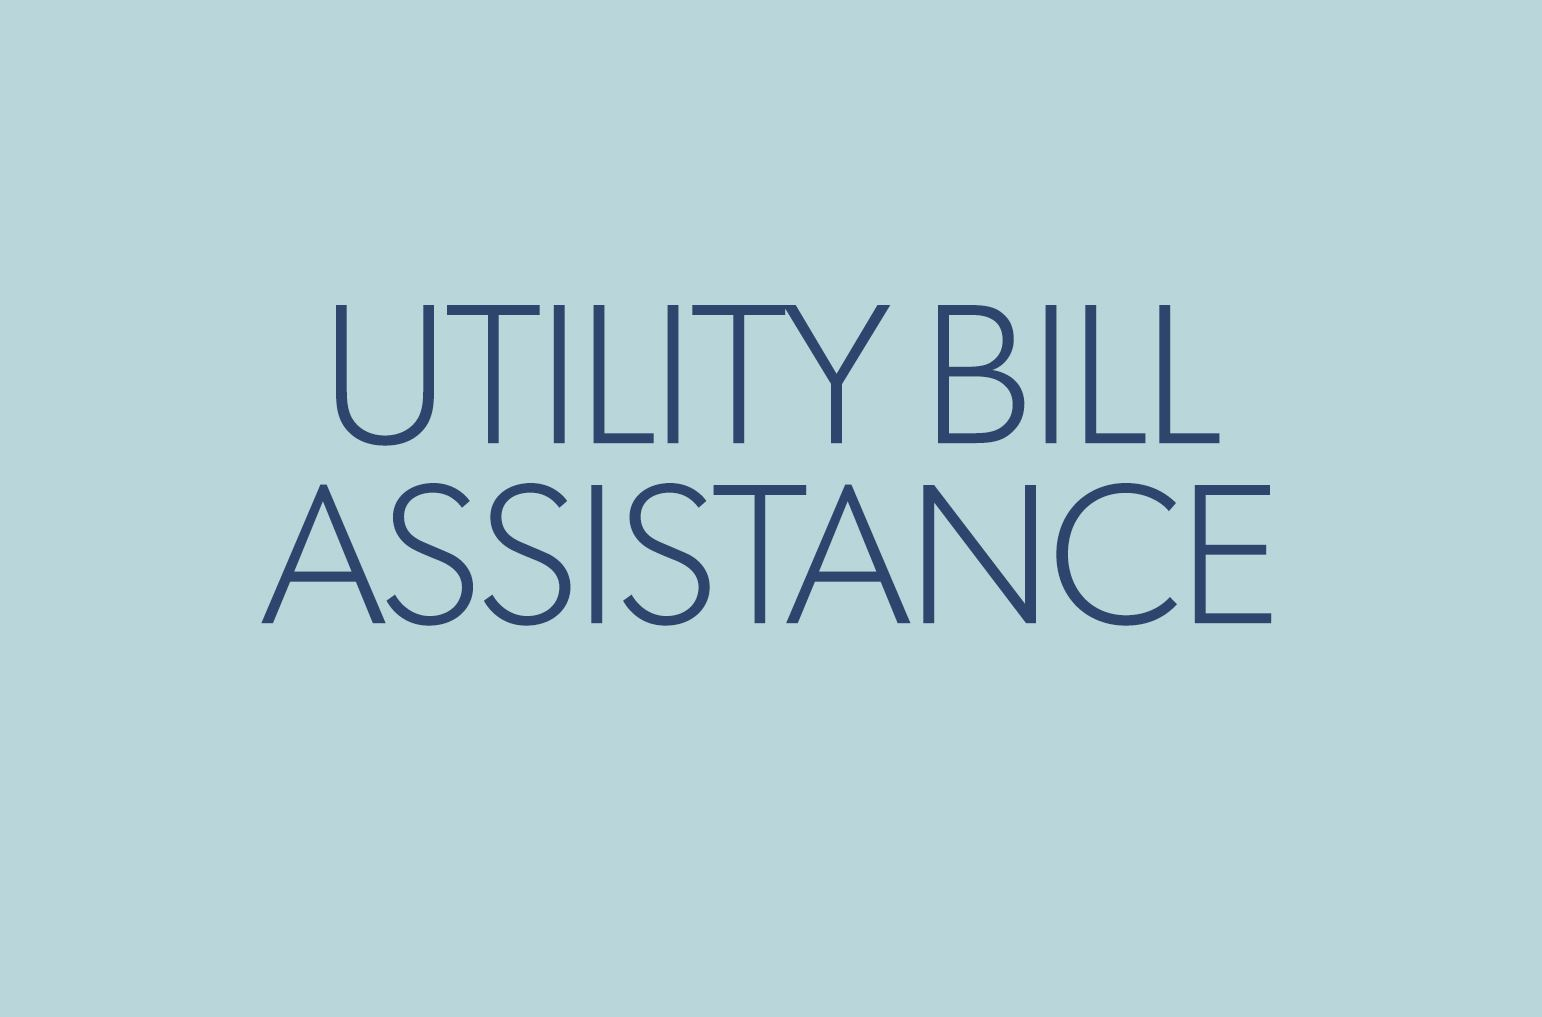 utility bill assistance business